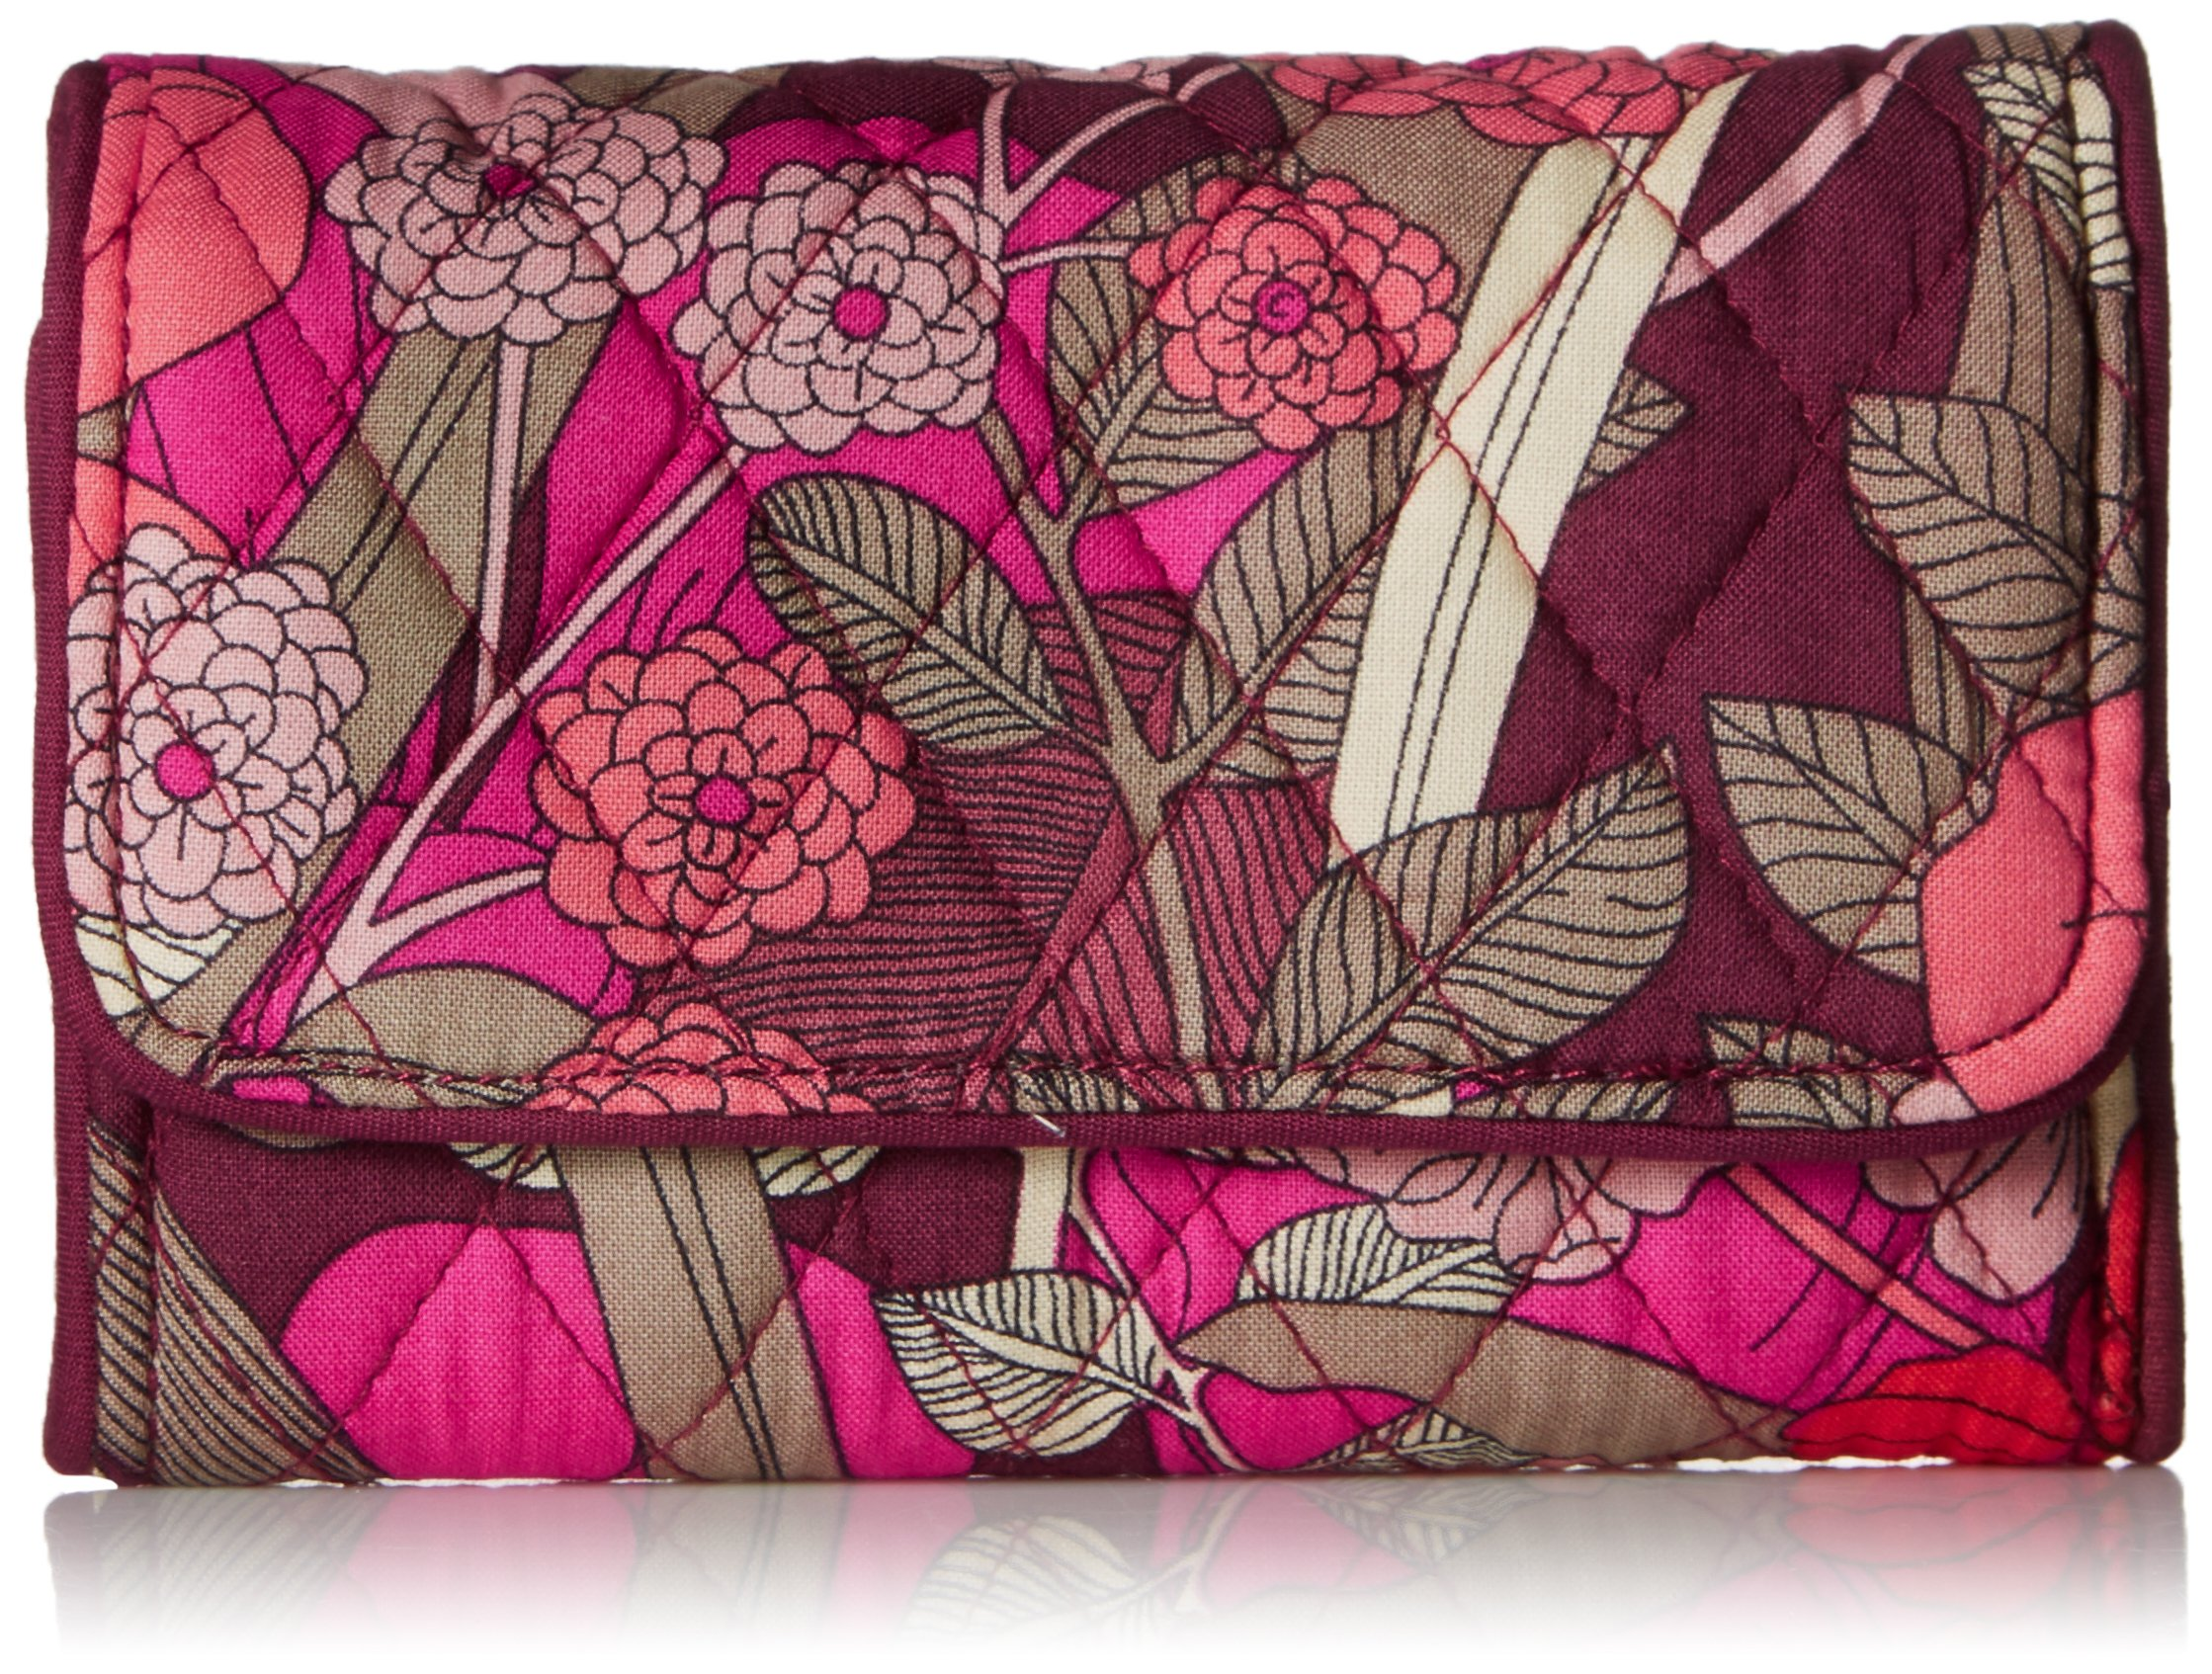 Riley Compact Wallet Bohemian Blooms, One Size